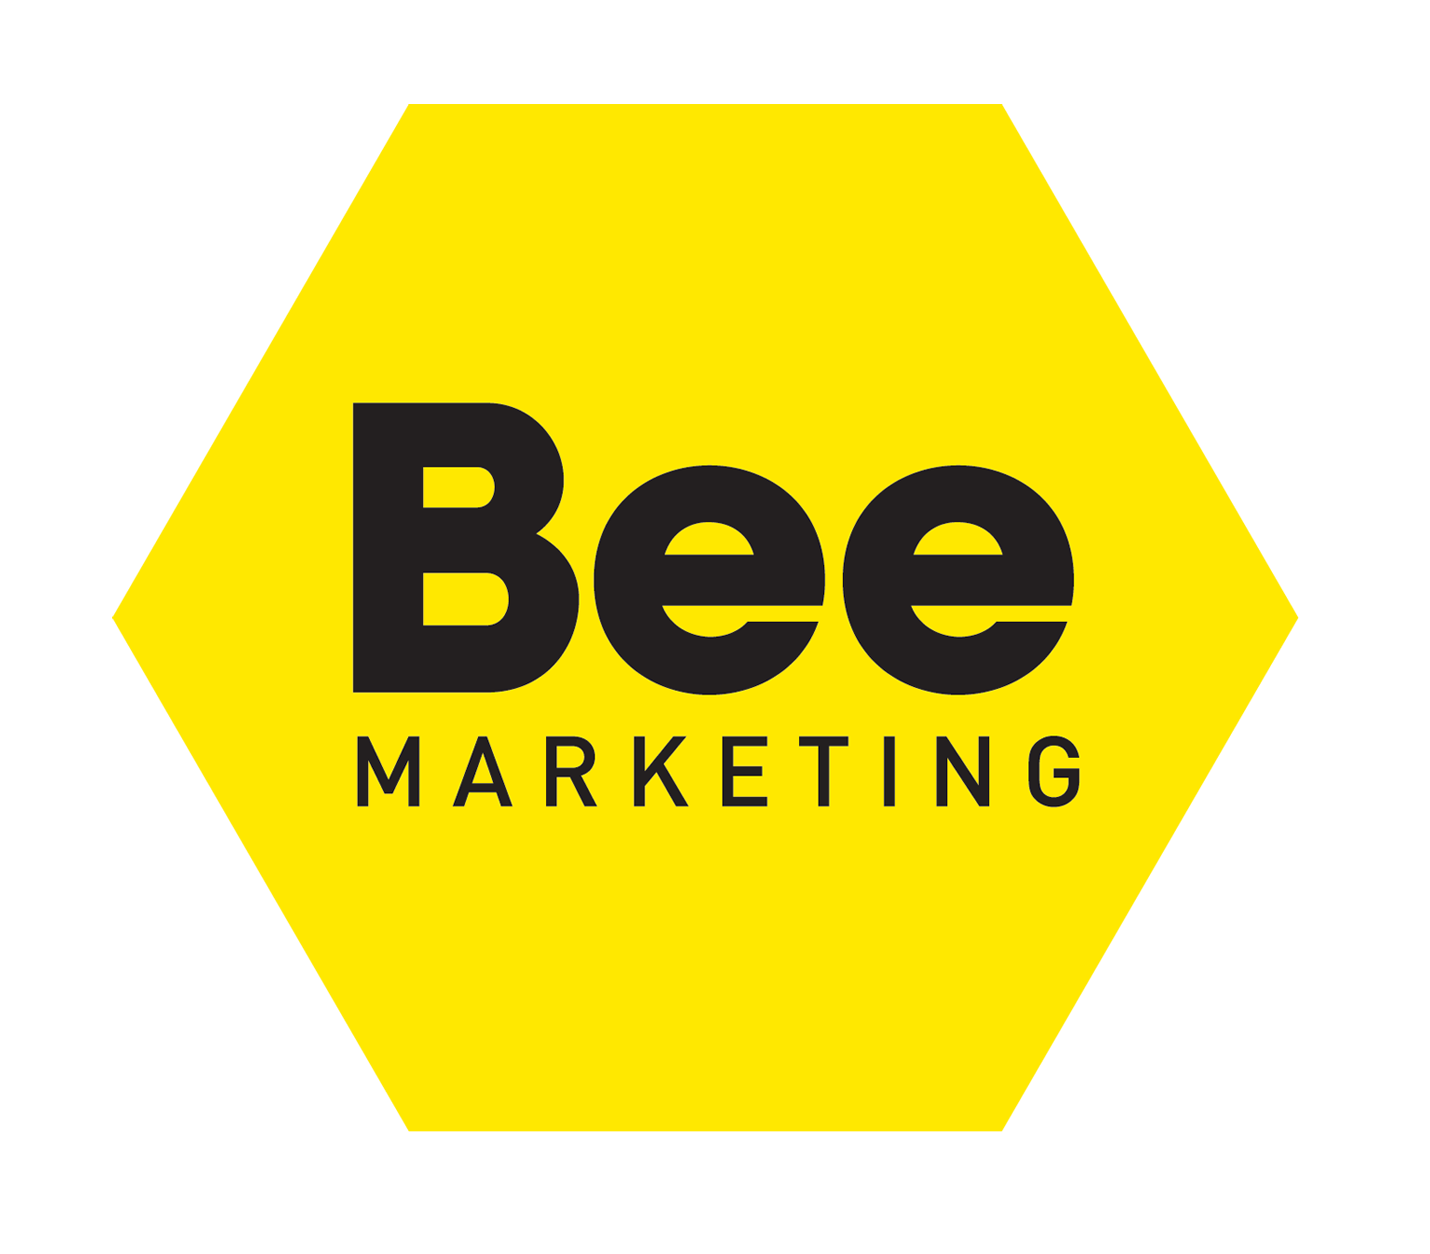 Bee Marketing